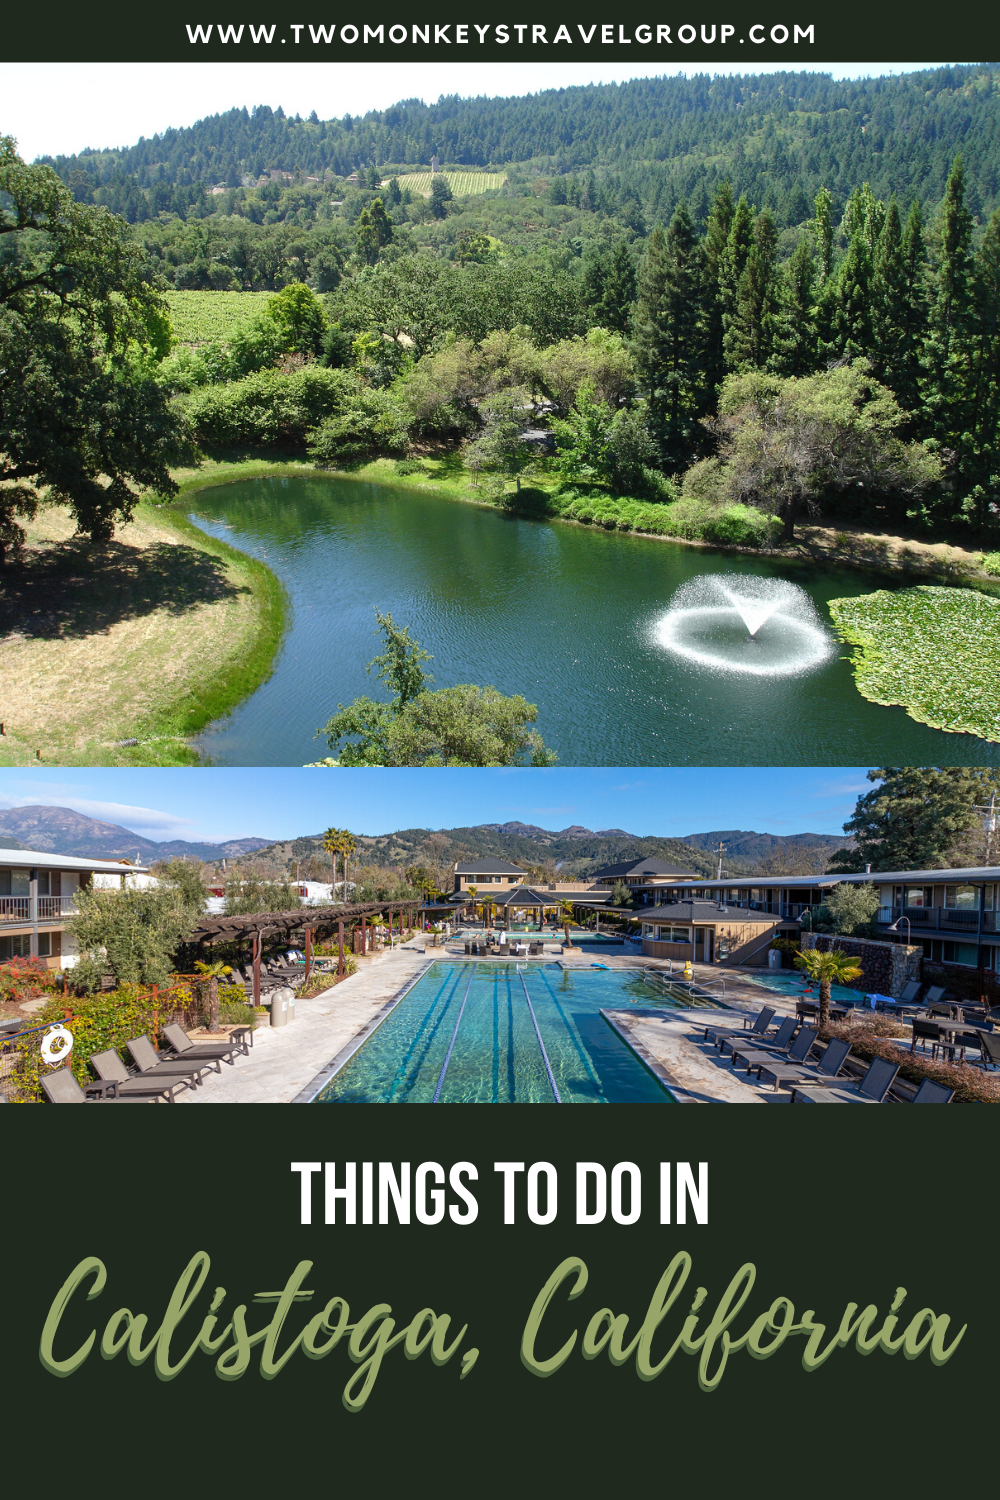 15 Things to do in Calistoga, California [With Suggested Day Tours]